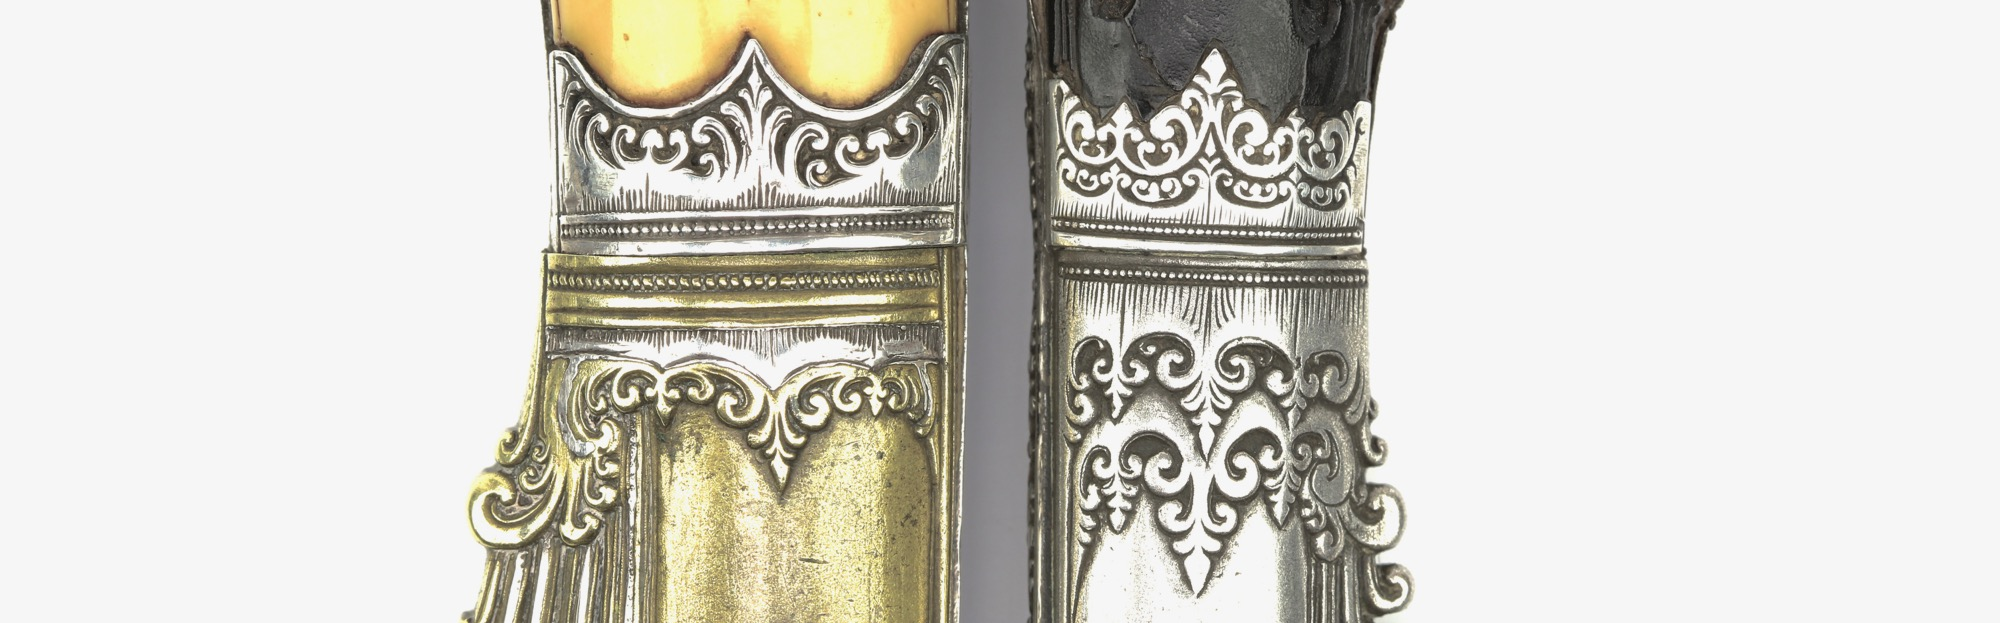 Lotus bud elements on Sinhalese knives